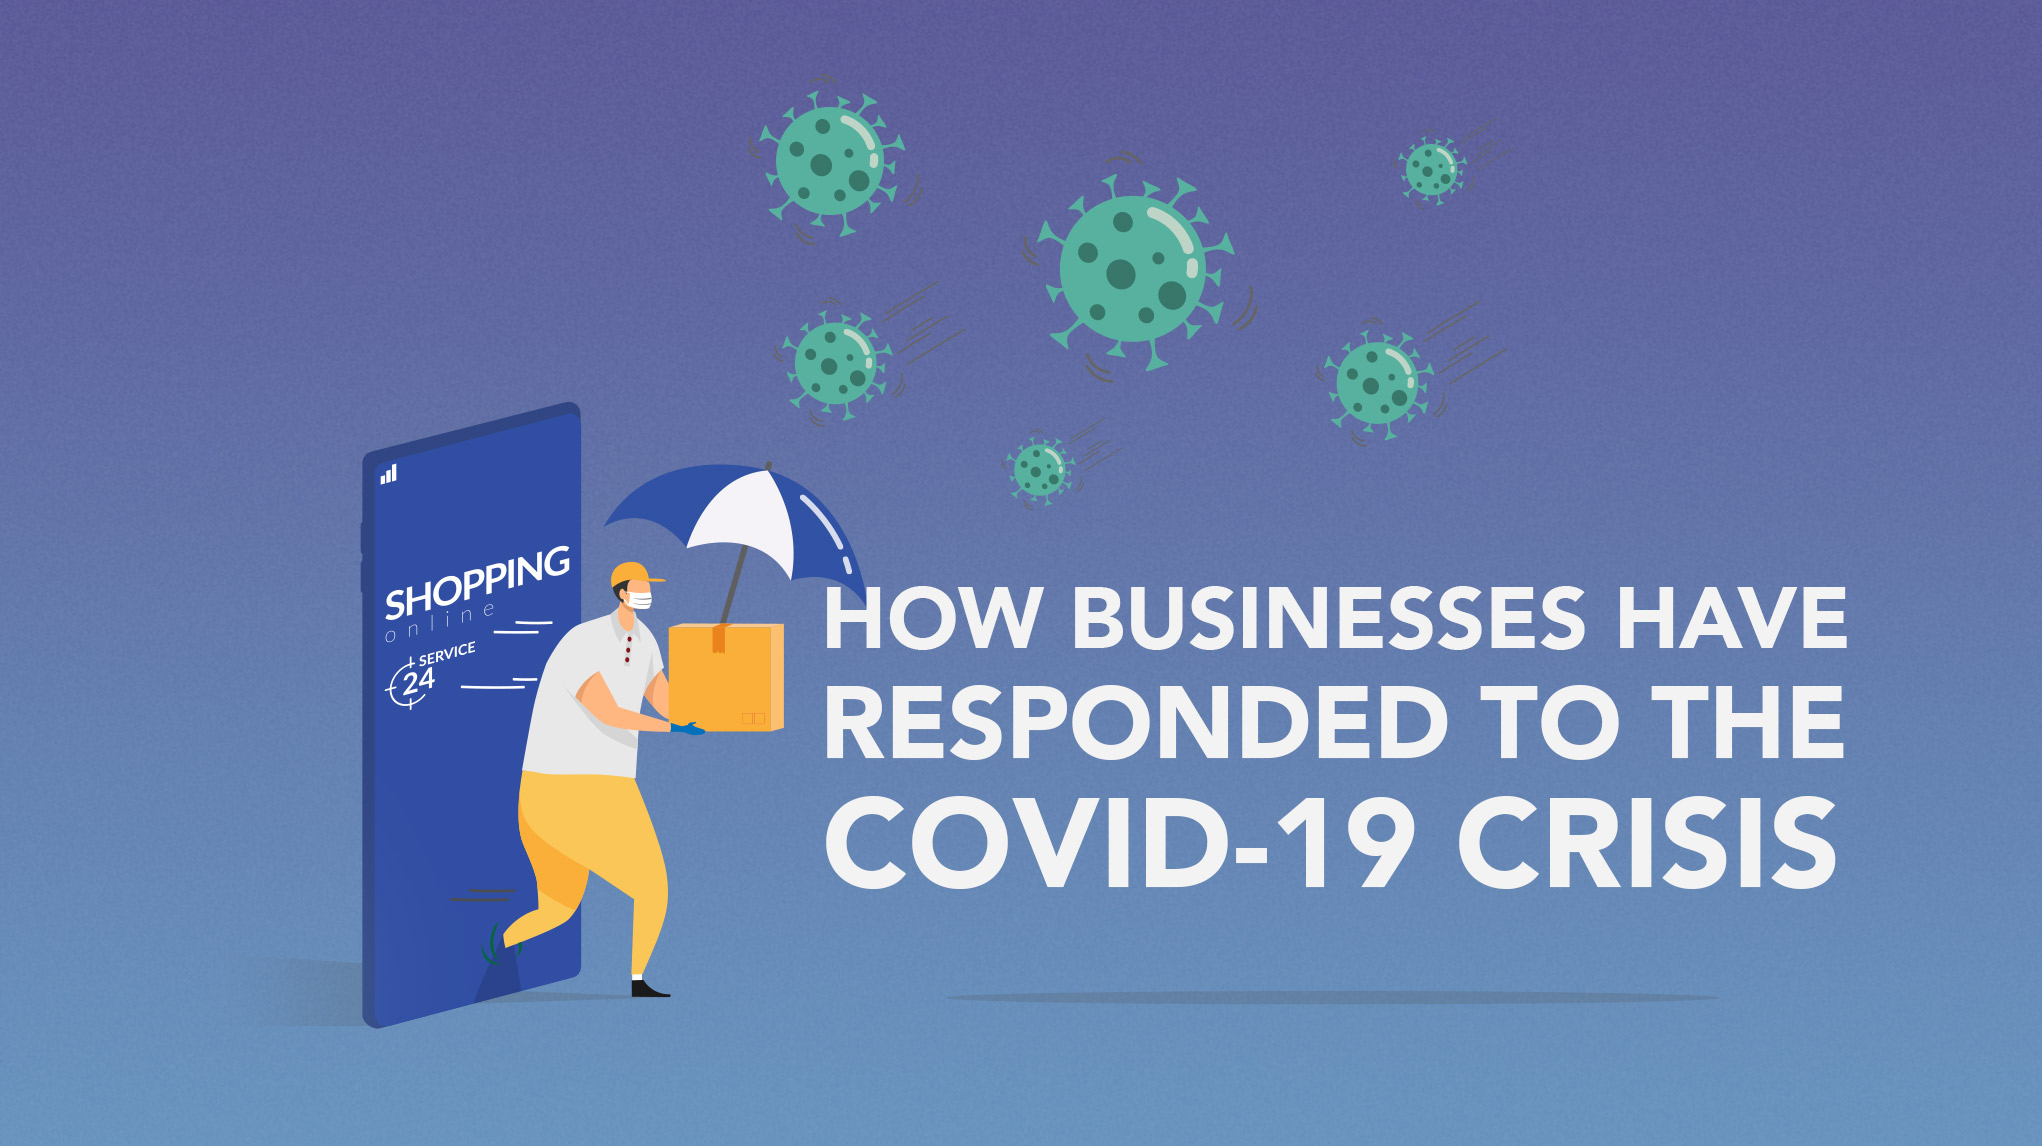 How Businesses Have Responded to the Covid-19 Crisis